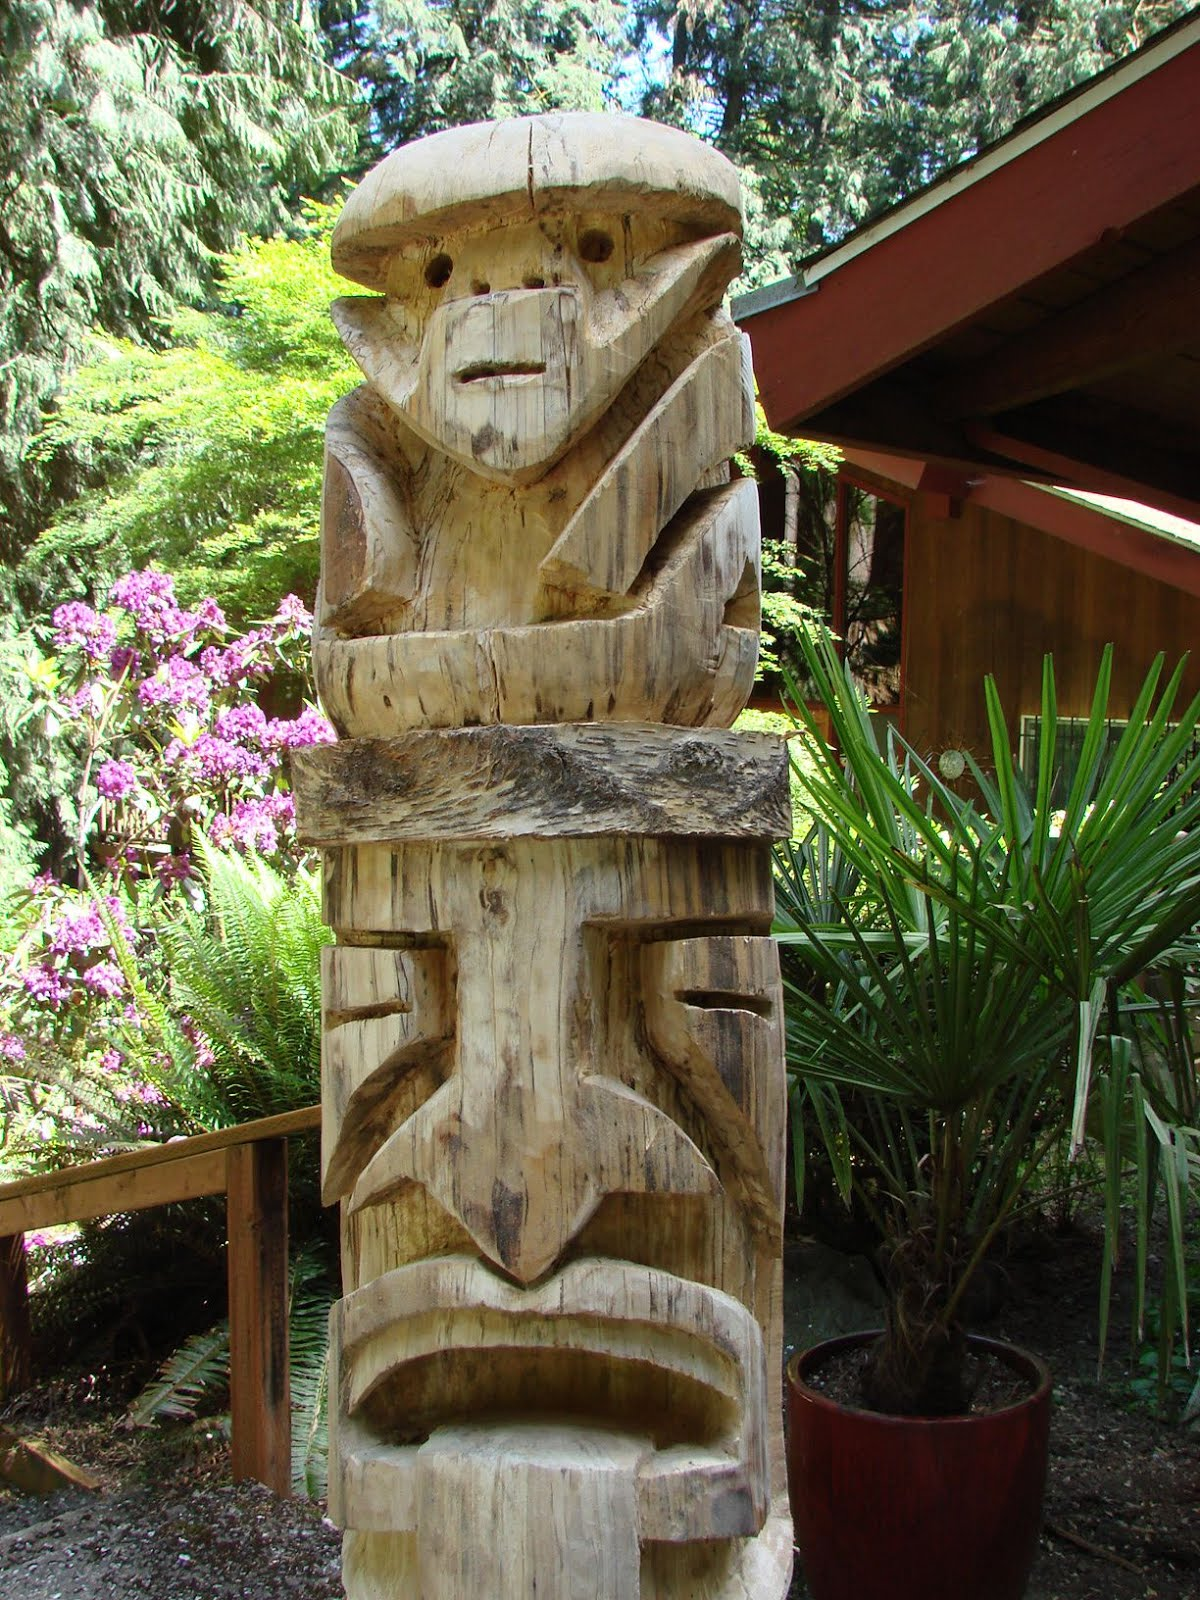 I am hoping to be done by the local Tiki Kon event here in July.